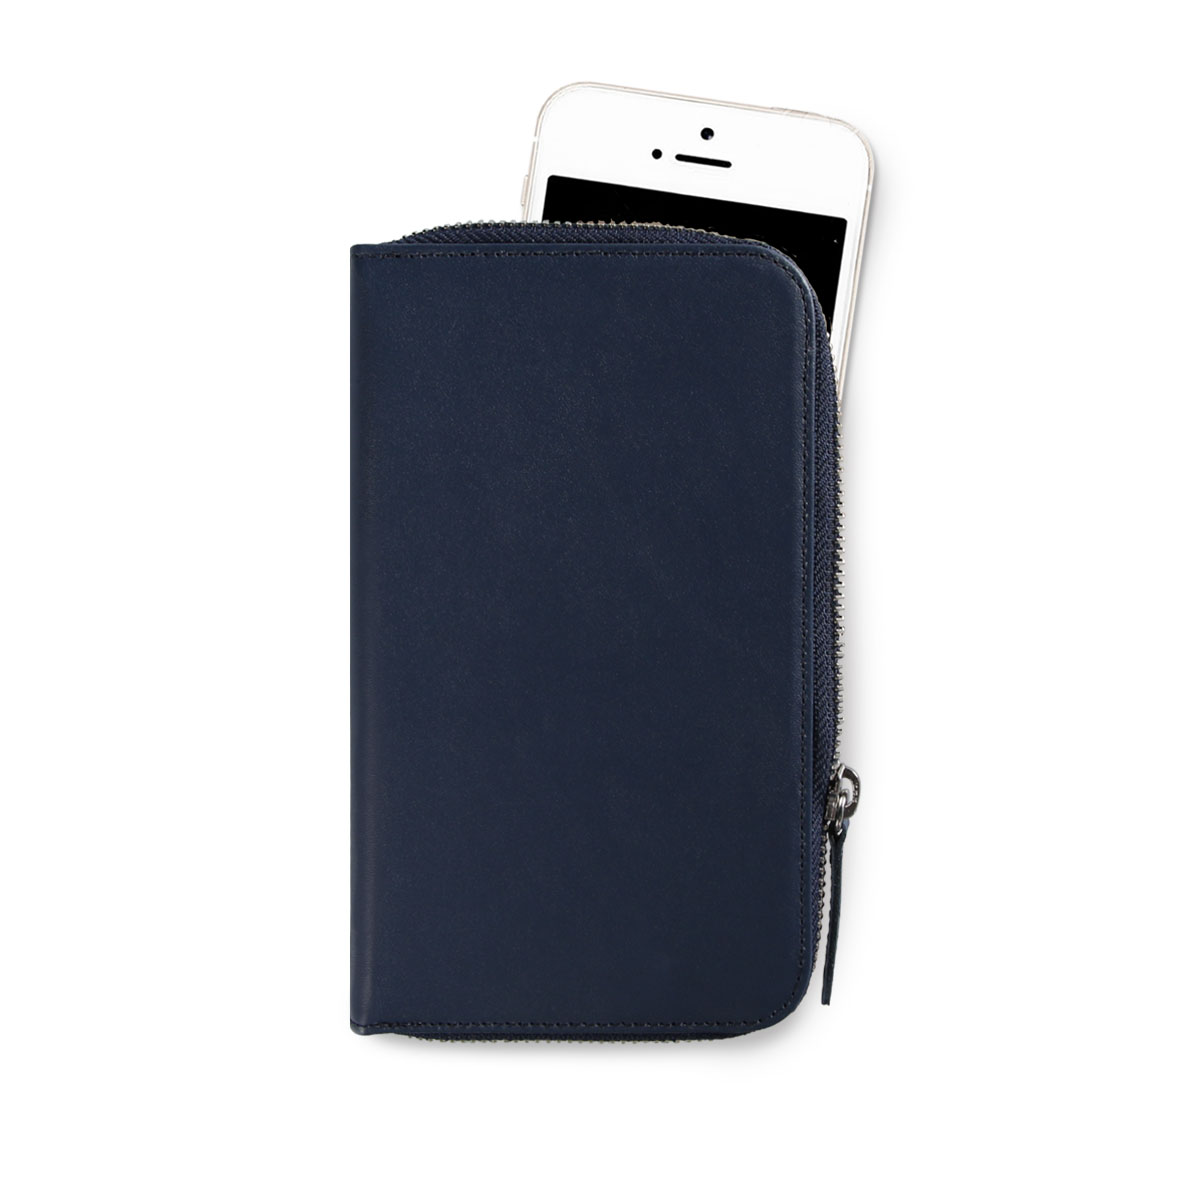 Daily Phone Pocket Plus Navy